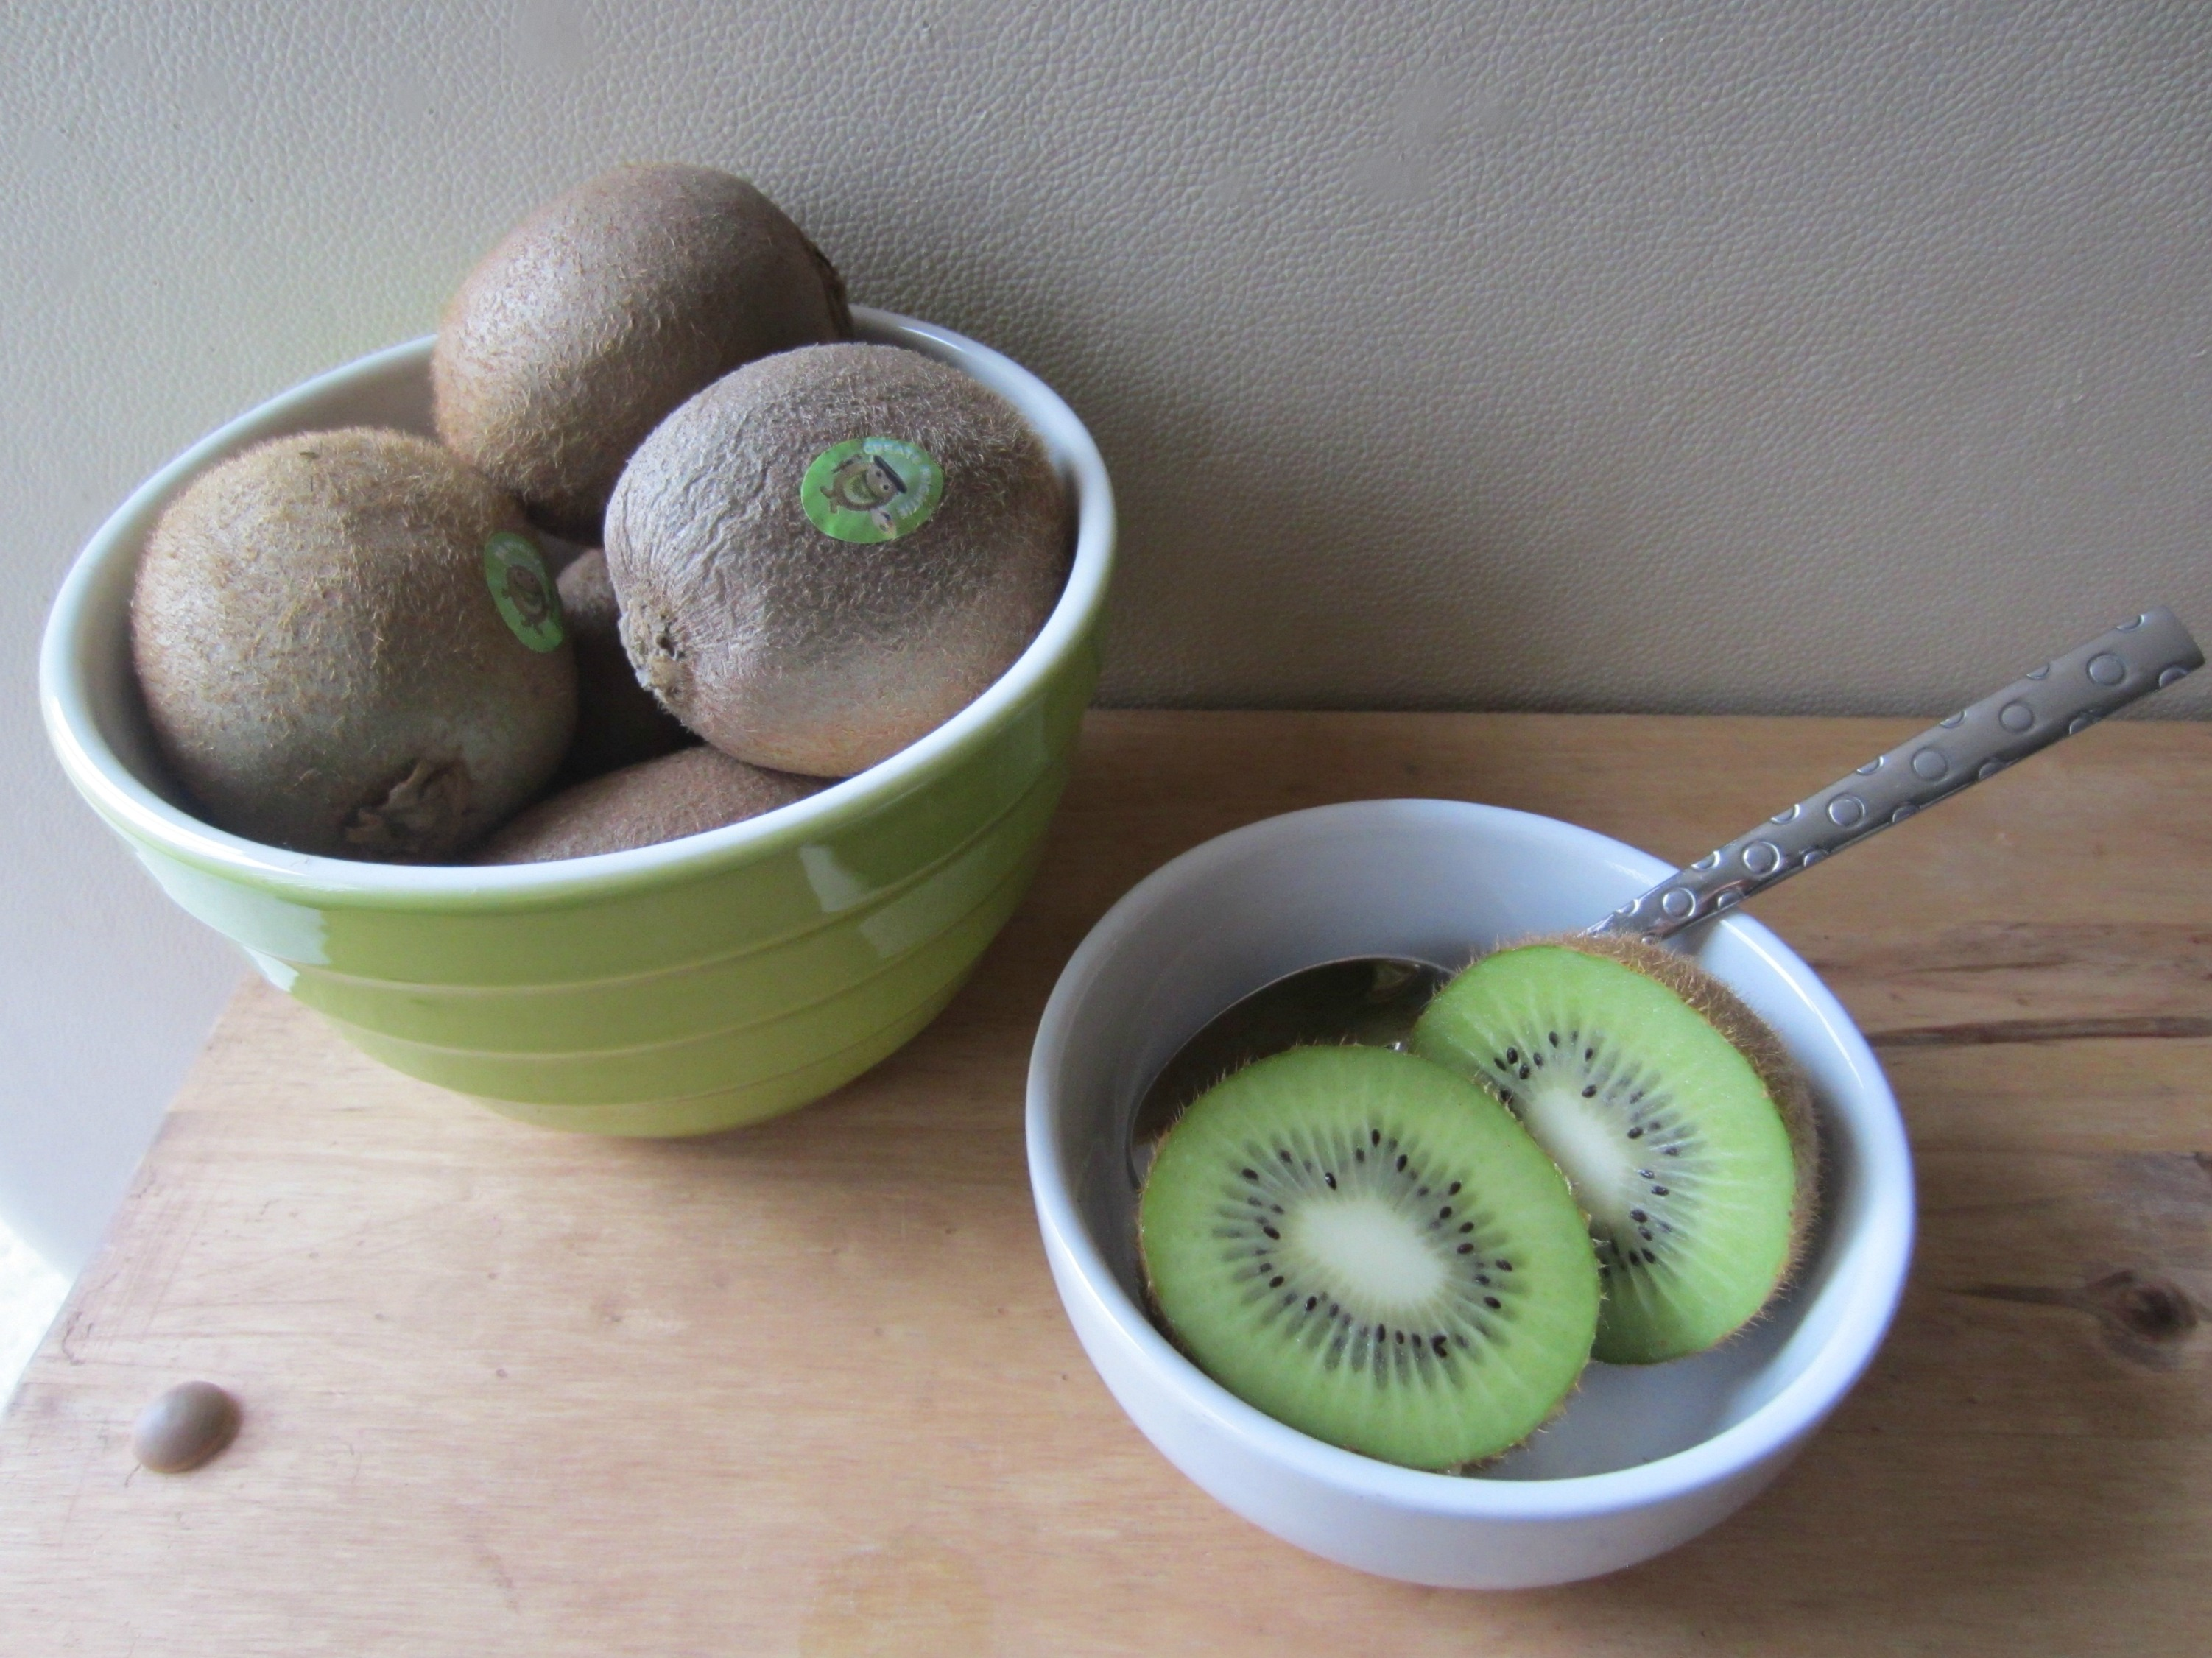 kiwis with a spoon